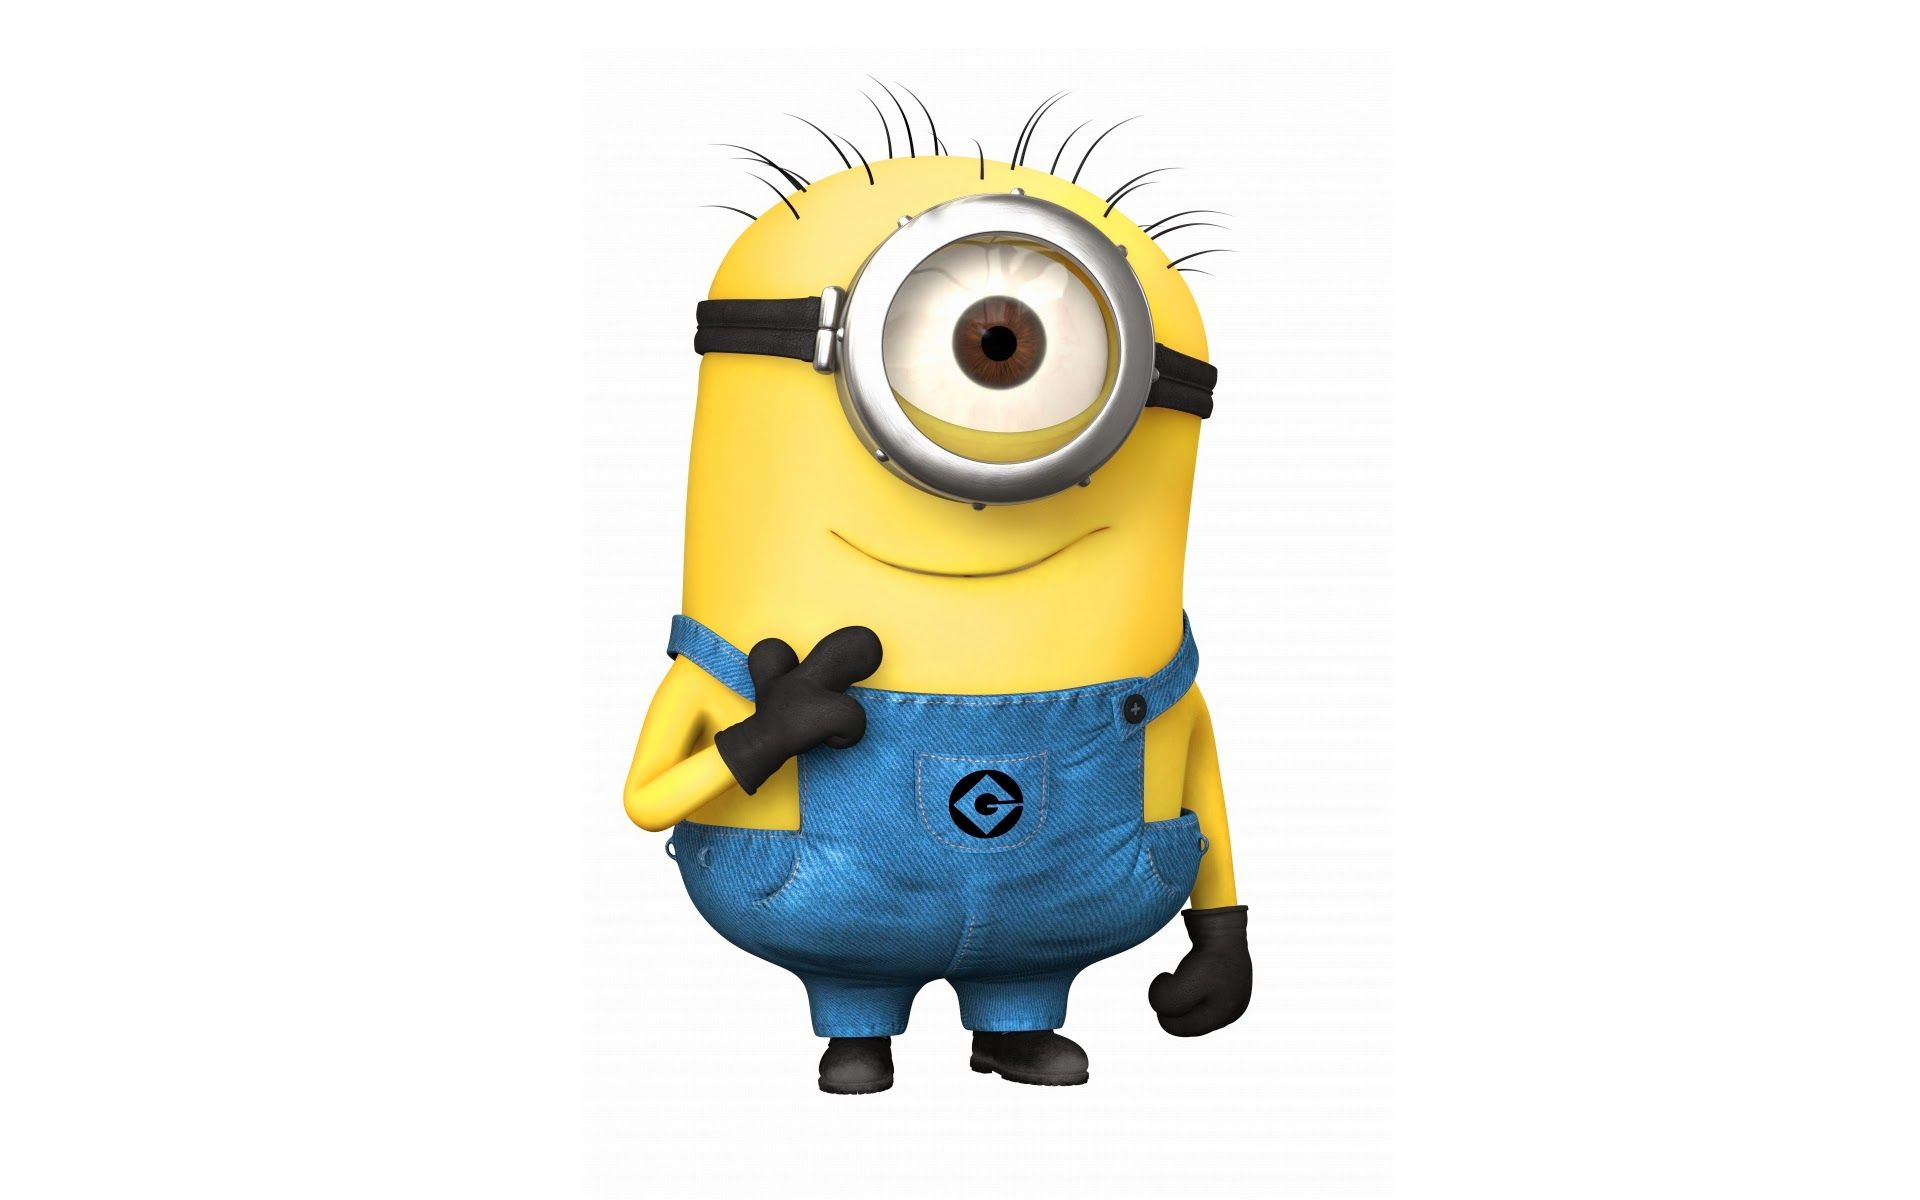 cute minion wallpaper hd free download. | thứ cần mua | minions